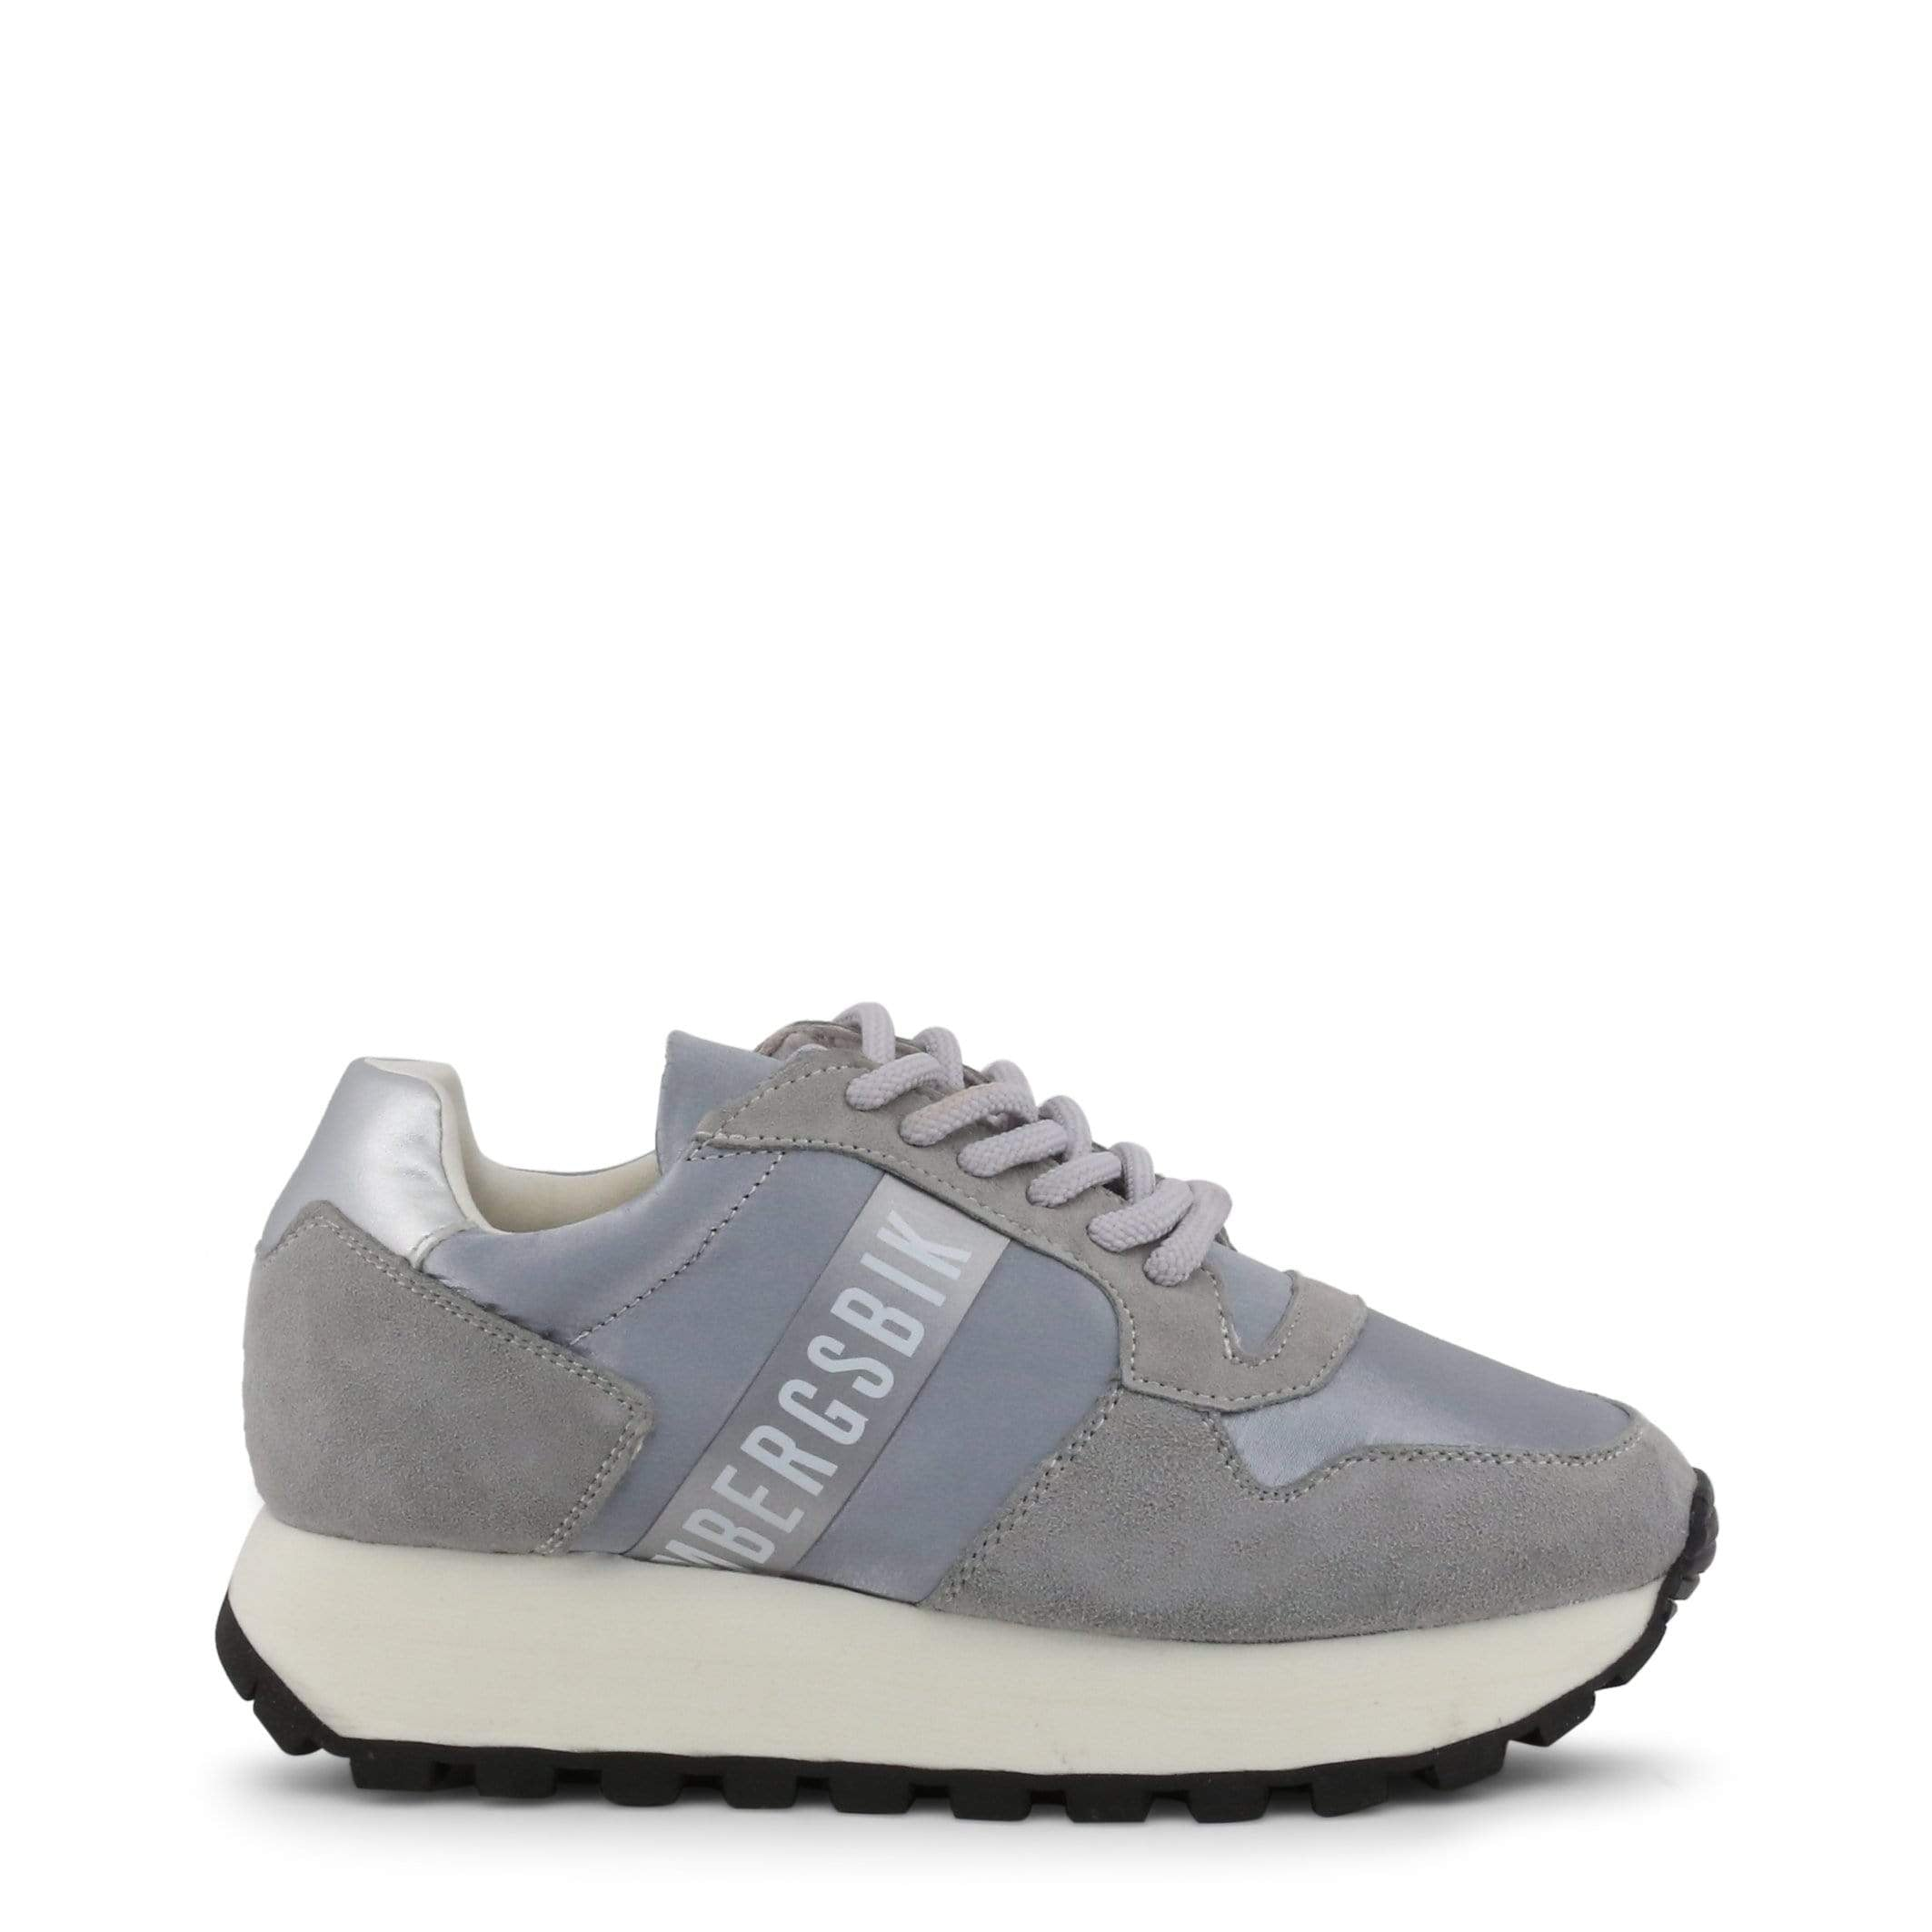 Bikkembergs Shoes Sneakers grey / EU 36 Bikkembergs - FEND-ER_2087